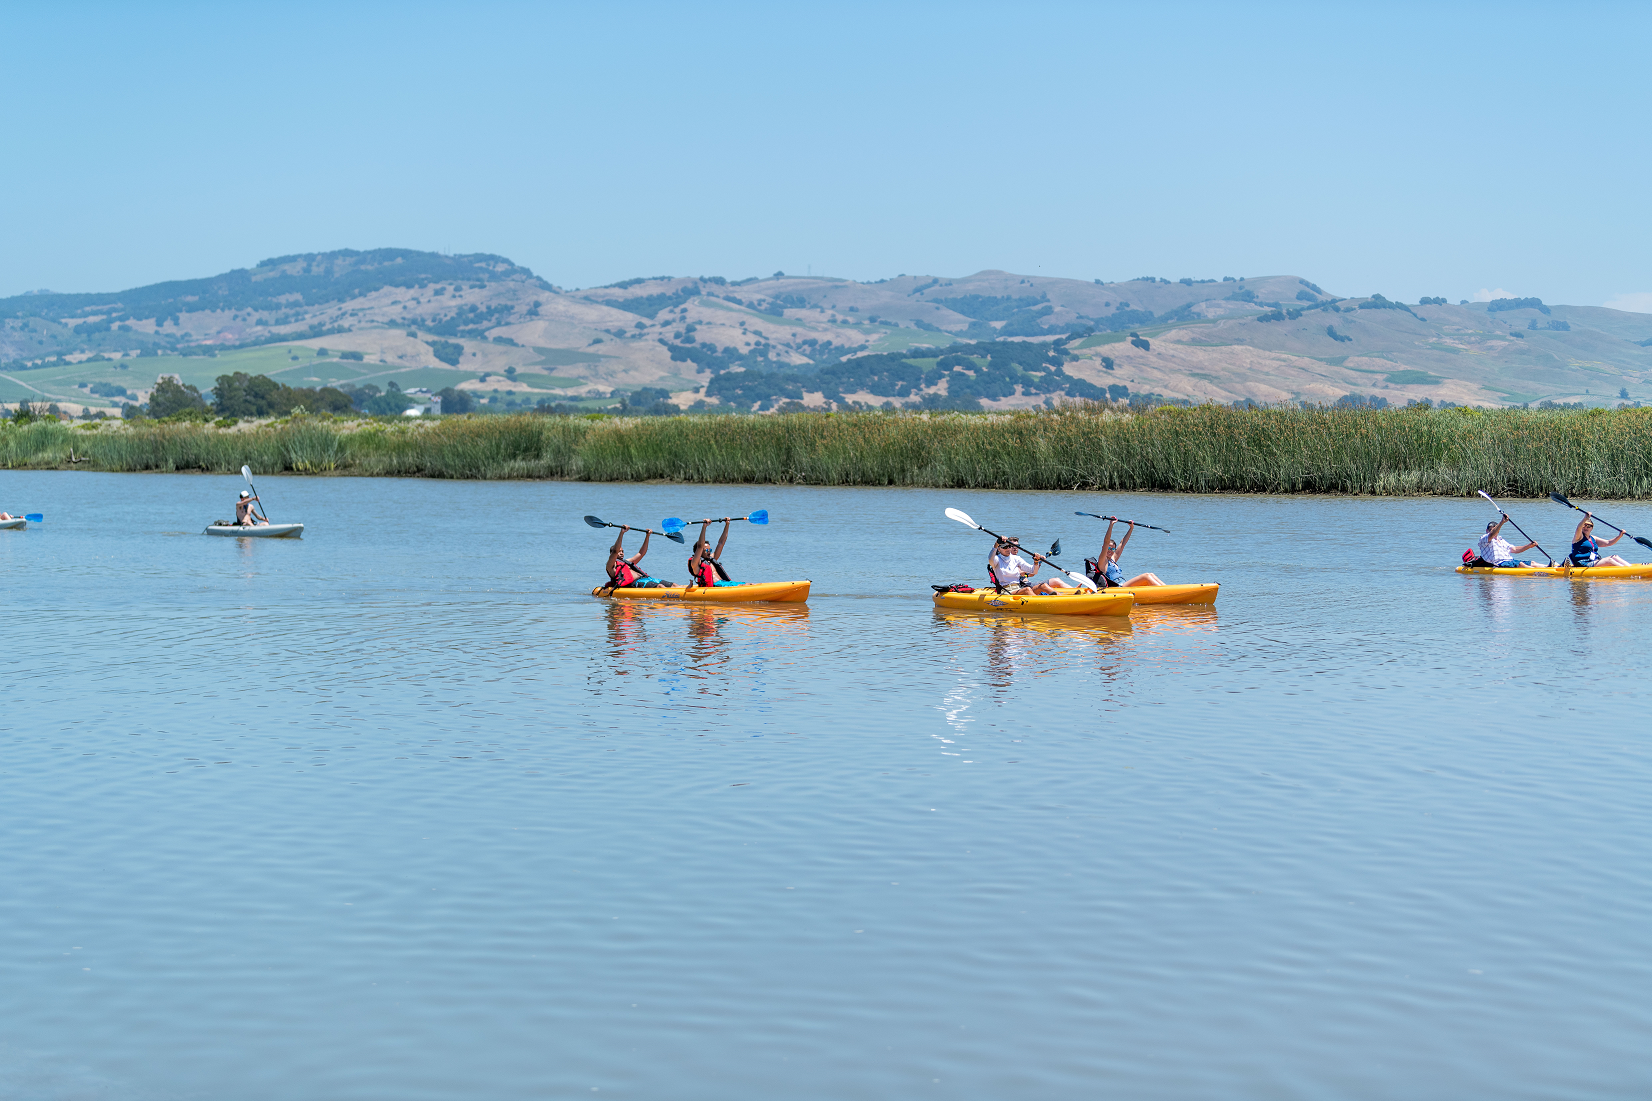 A group of kayakers on the Napa River